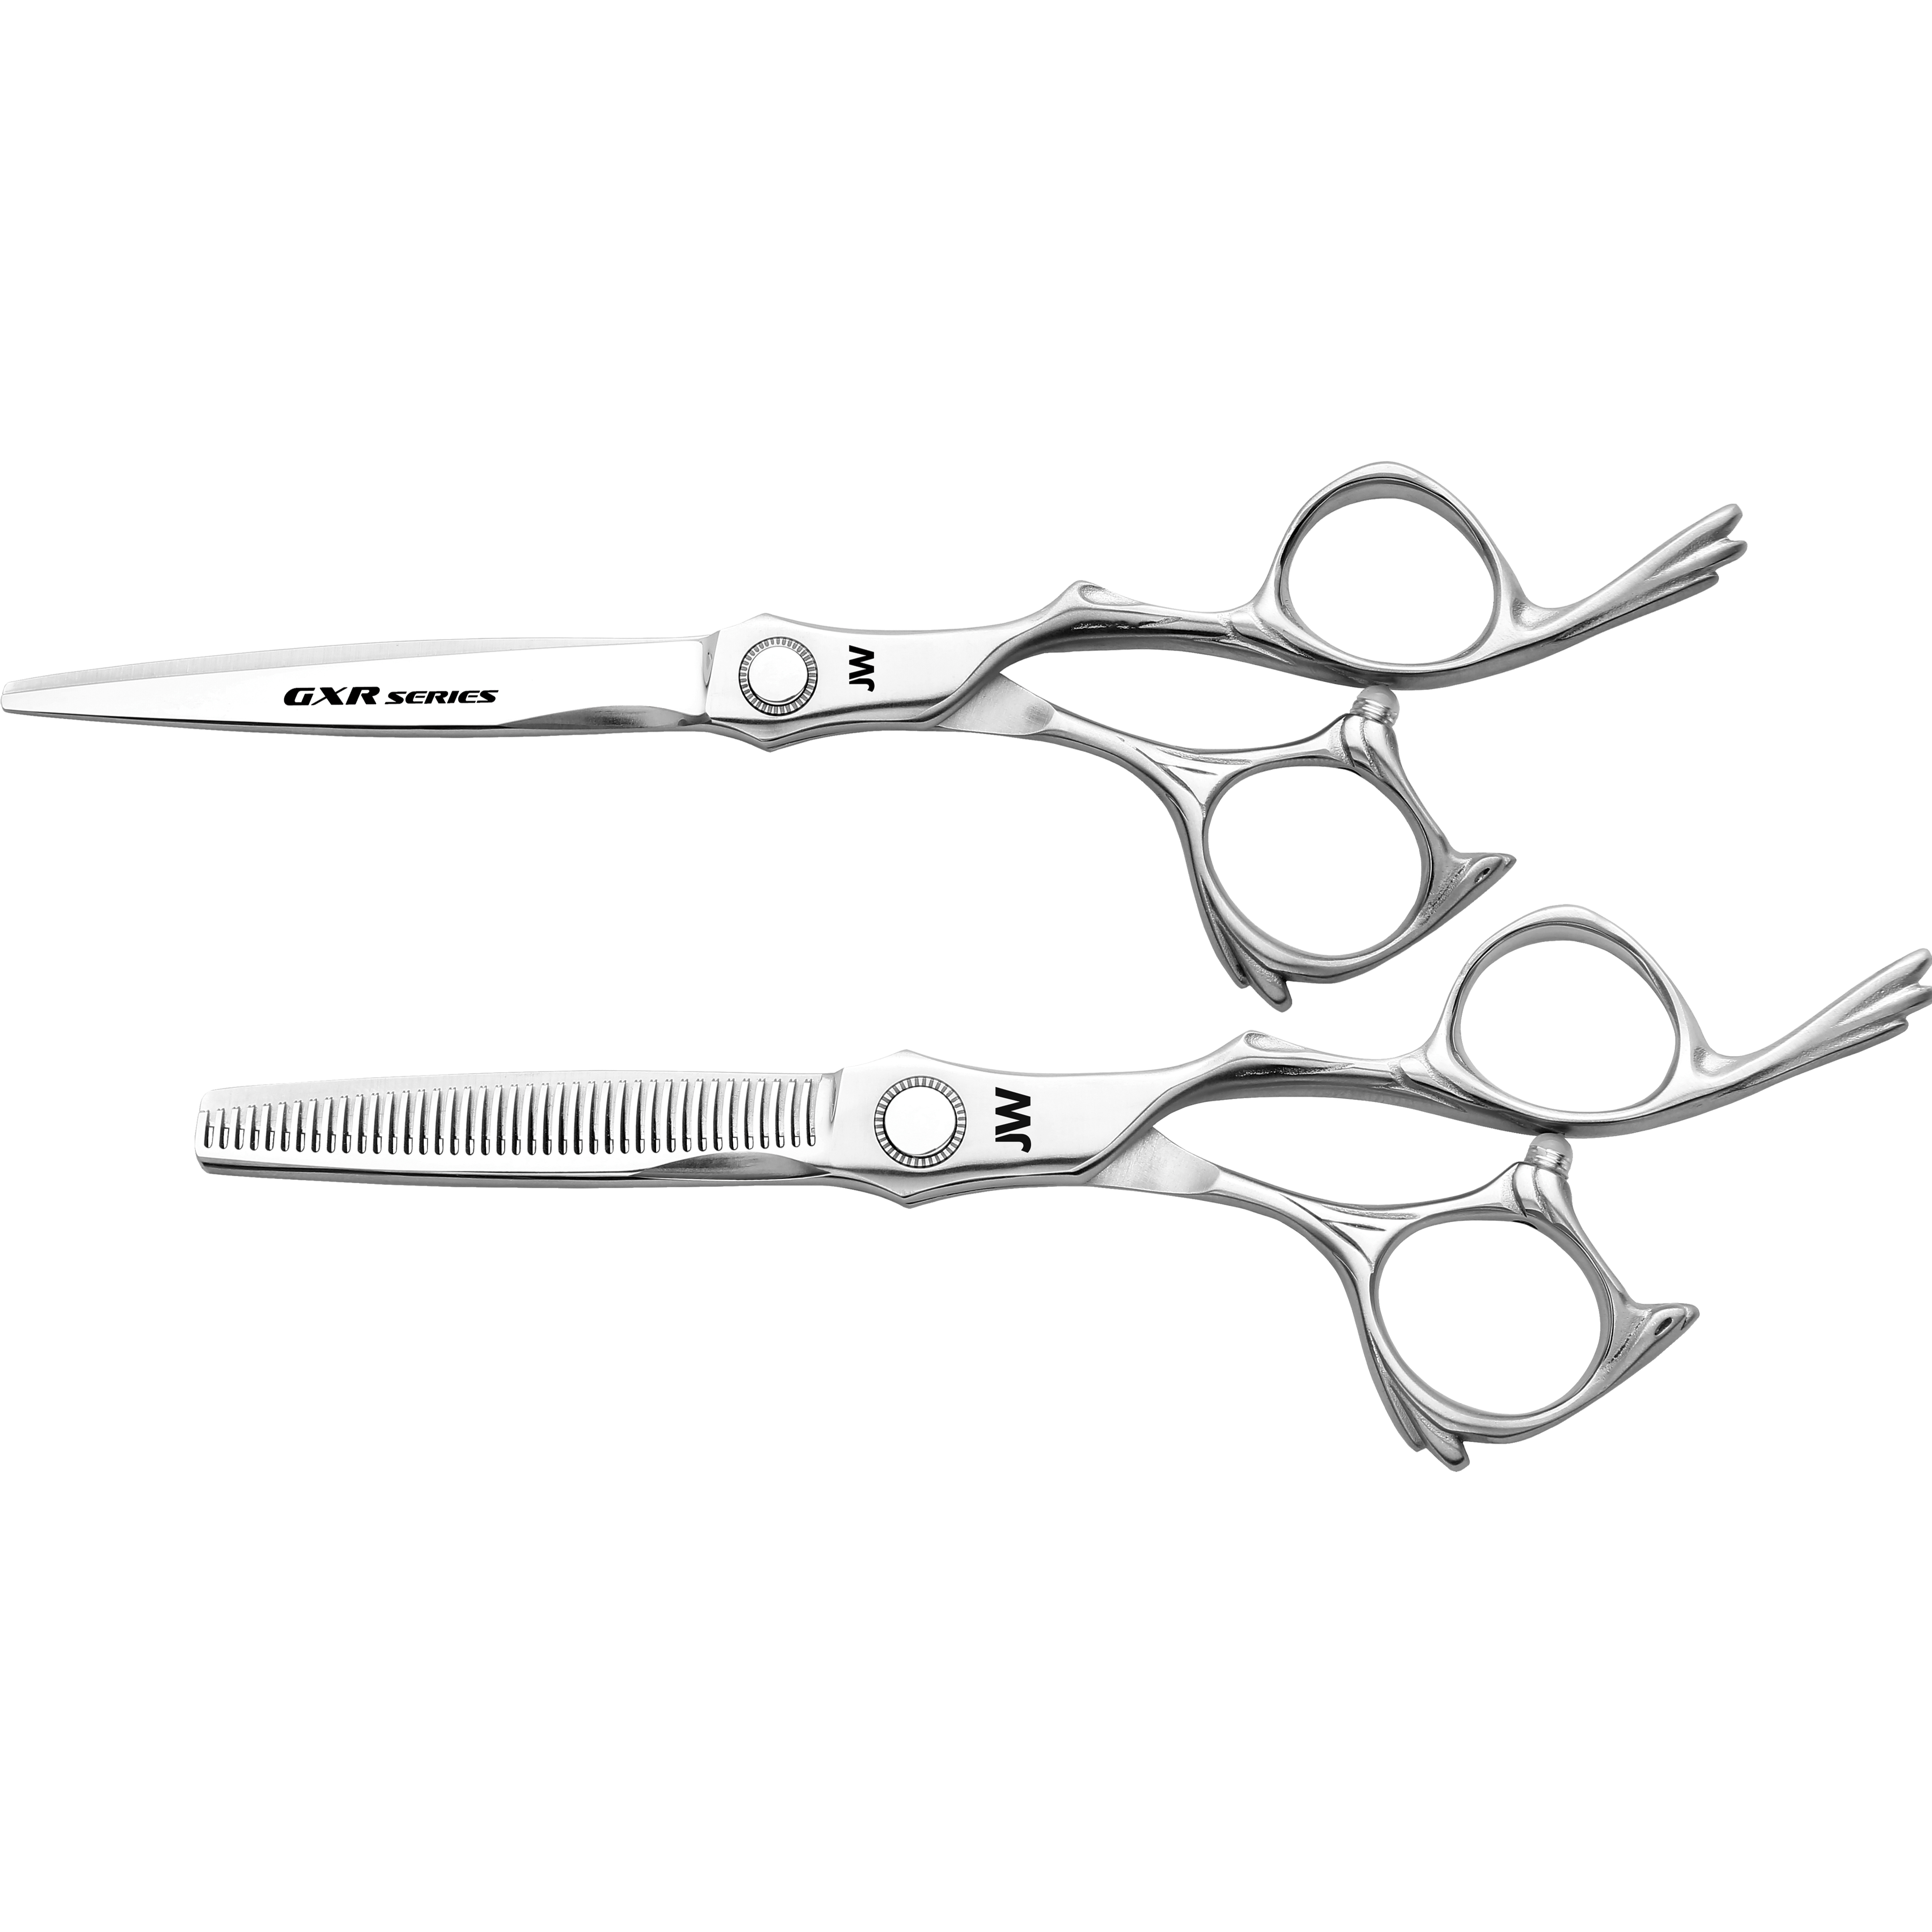 JW | Joewell GXR Shear & Thinner Kit